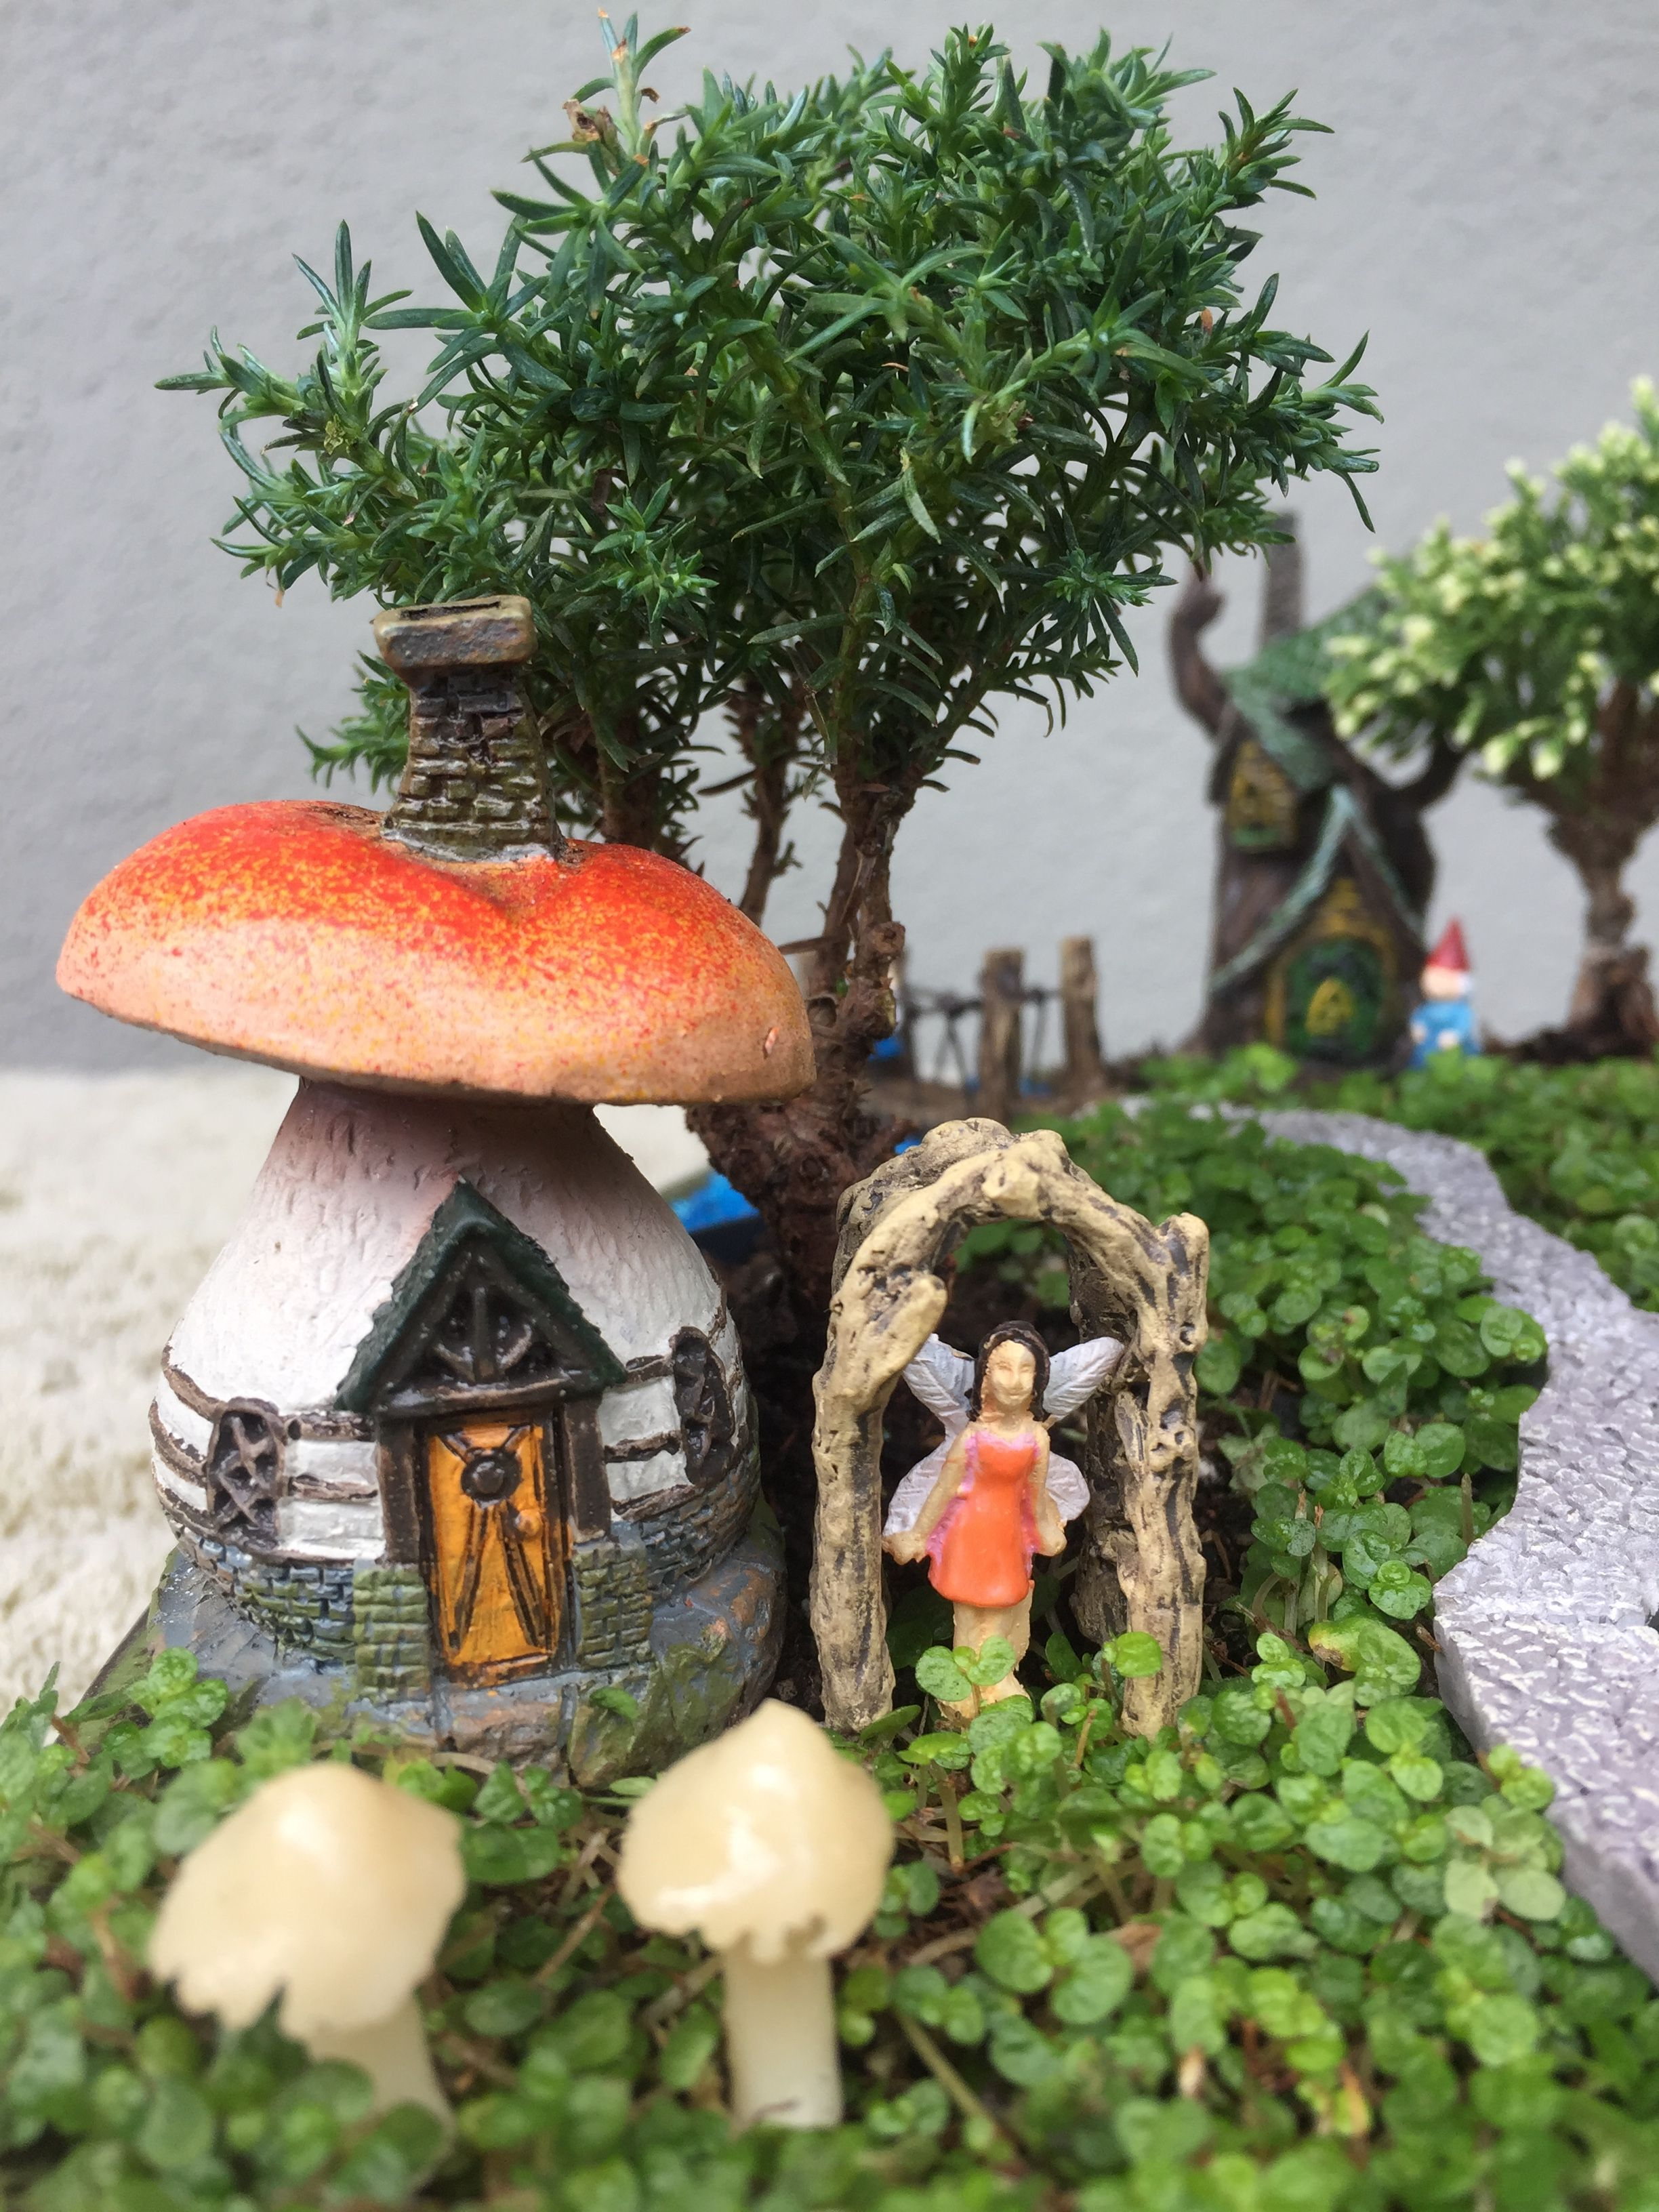 Manly Miniature Fairy Garden On Micro Side Is A Micro Mini Village Miniature Fairy Garden On Micro Side Is A Micro Mini Village Micro Mini Fairy Garden Furniture Micro Mini Fairy Garden Accessories